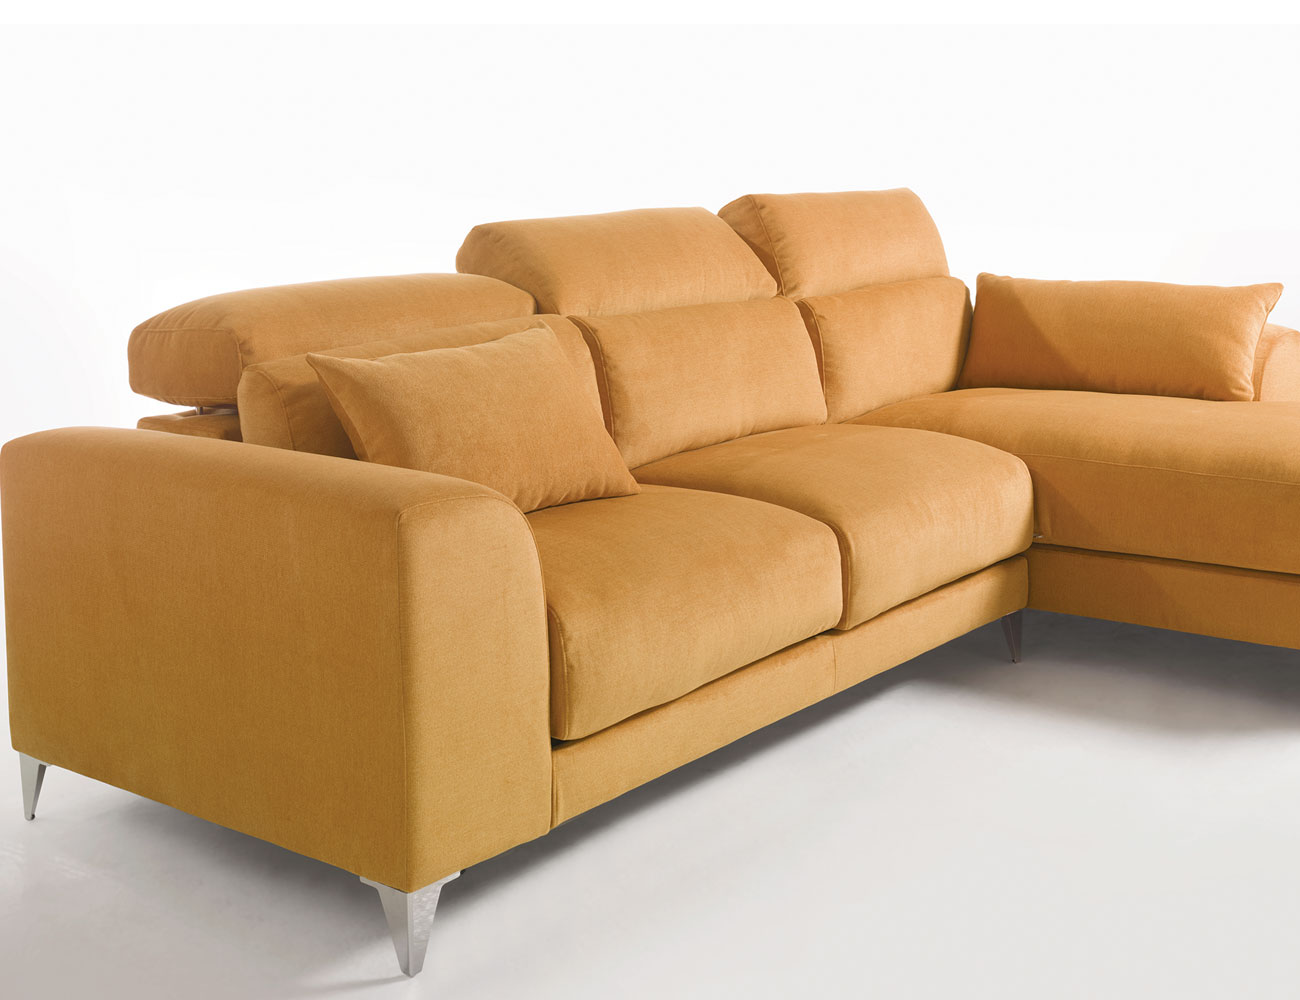 Sofa chaiselongue gran lujo decorativo patas altas amarillo 242